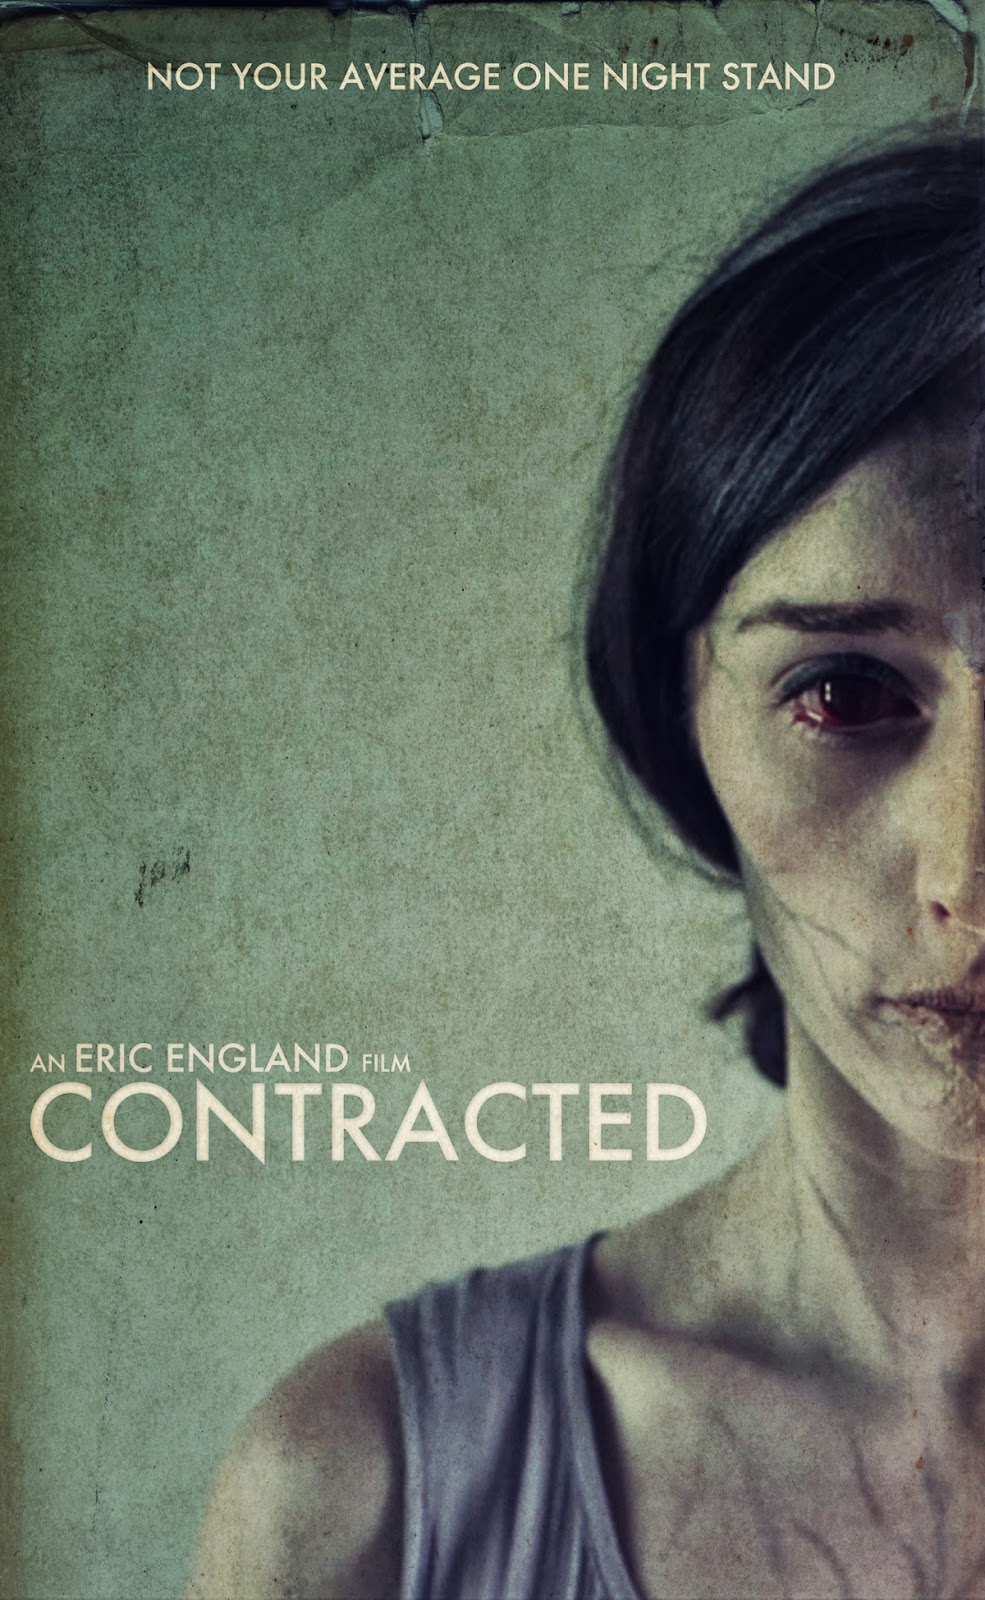 Contracted - DVD Release Details and Cover Art